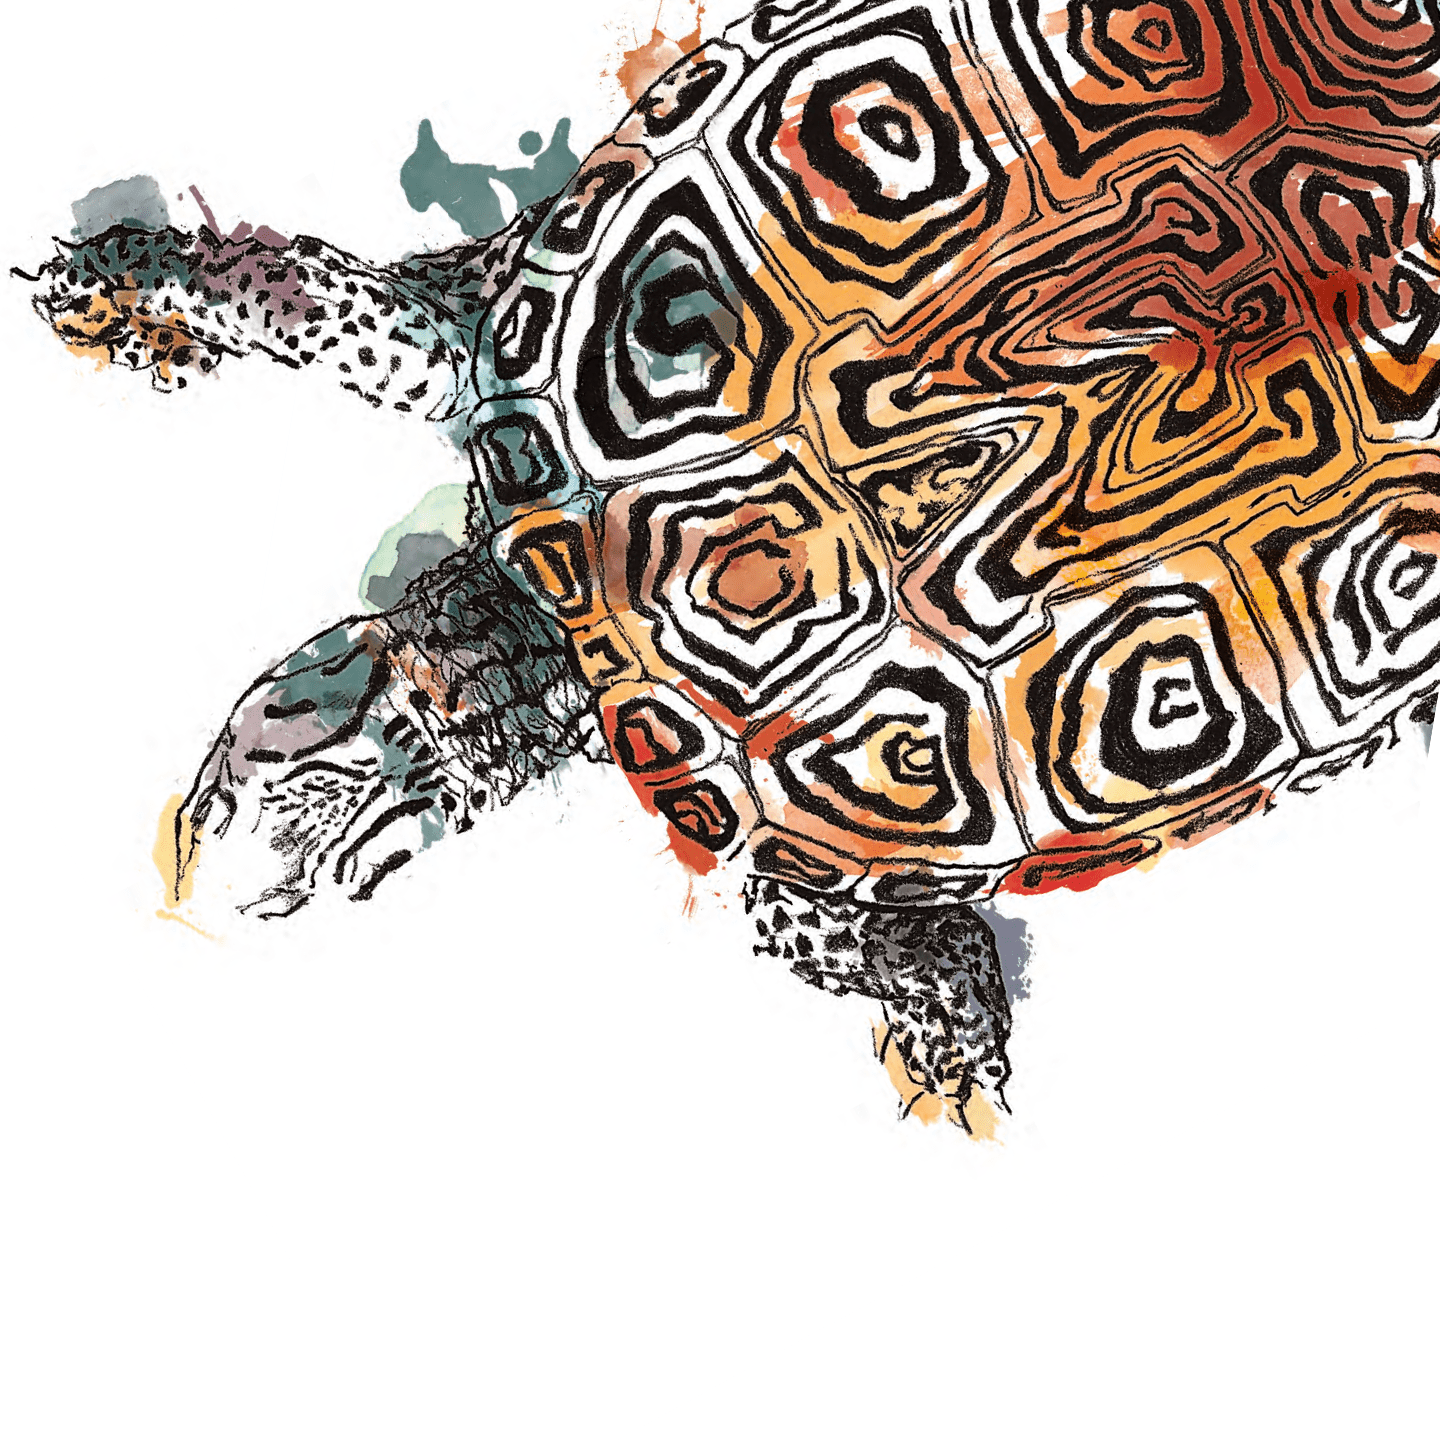 Turtle illustration in watercolor with an M pattern shell